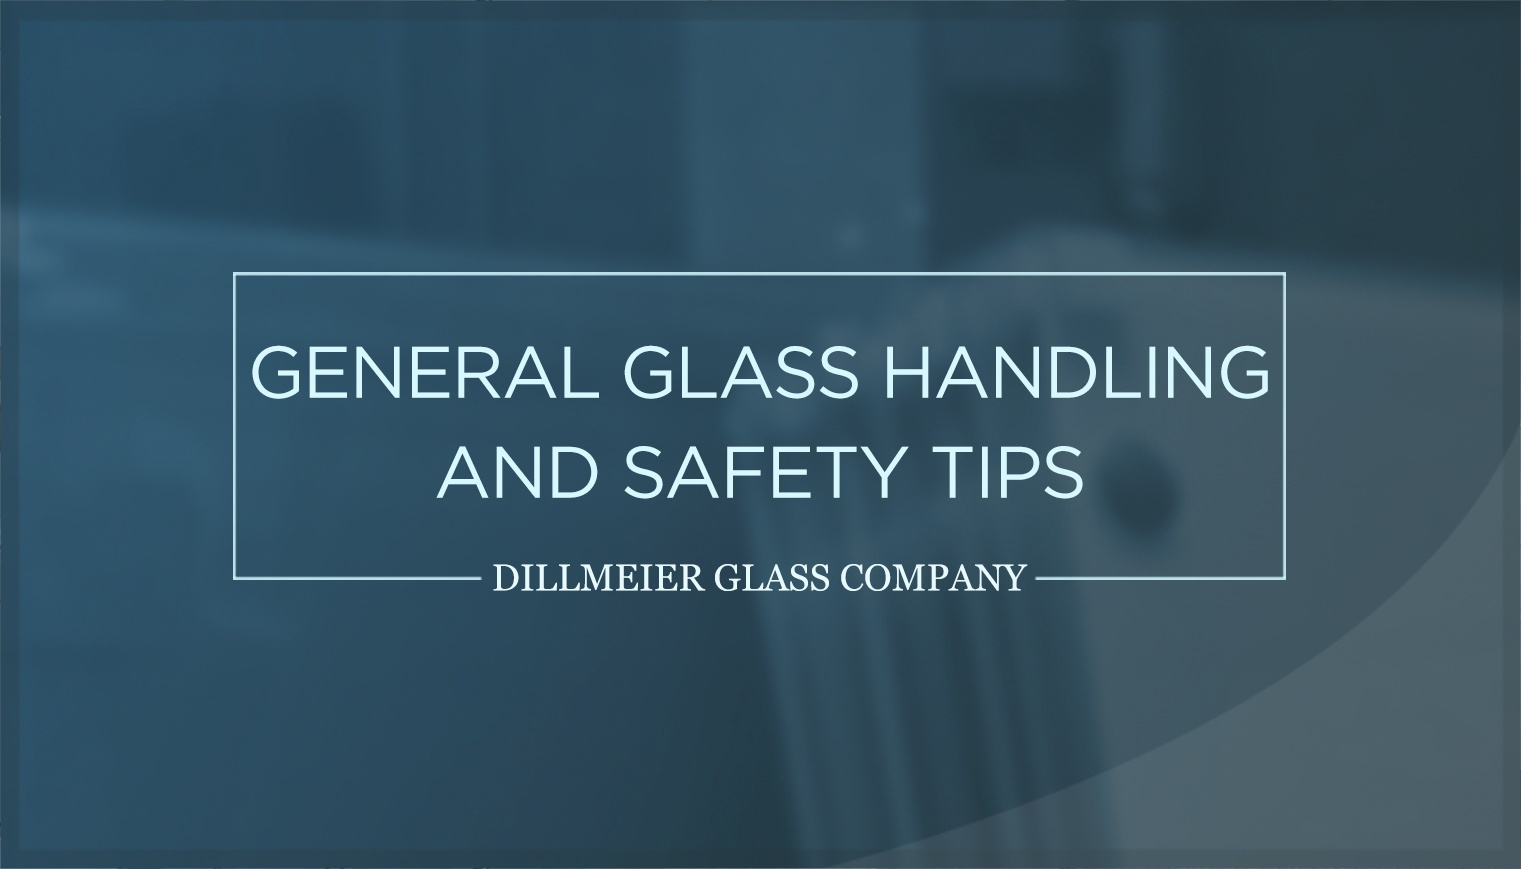 General Glass Handling and Safety Tips